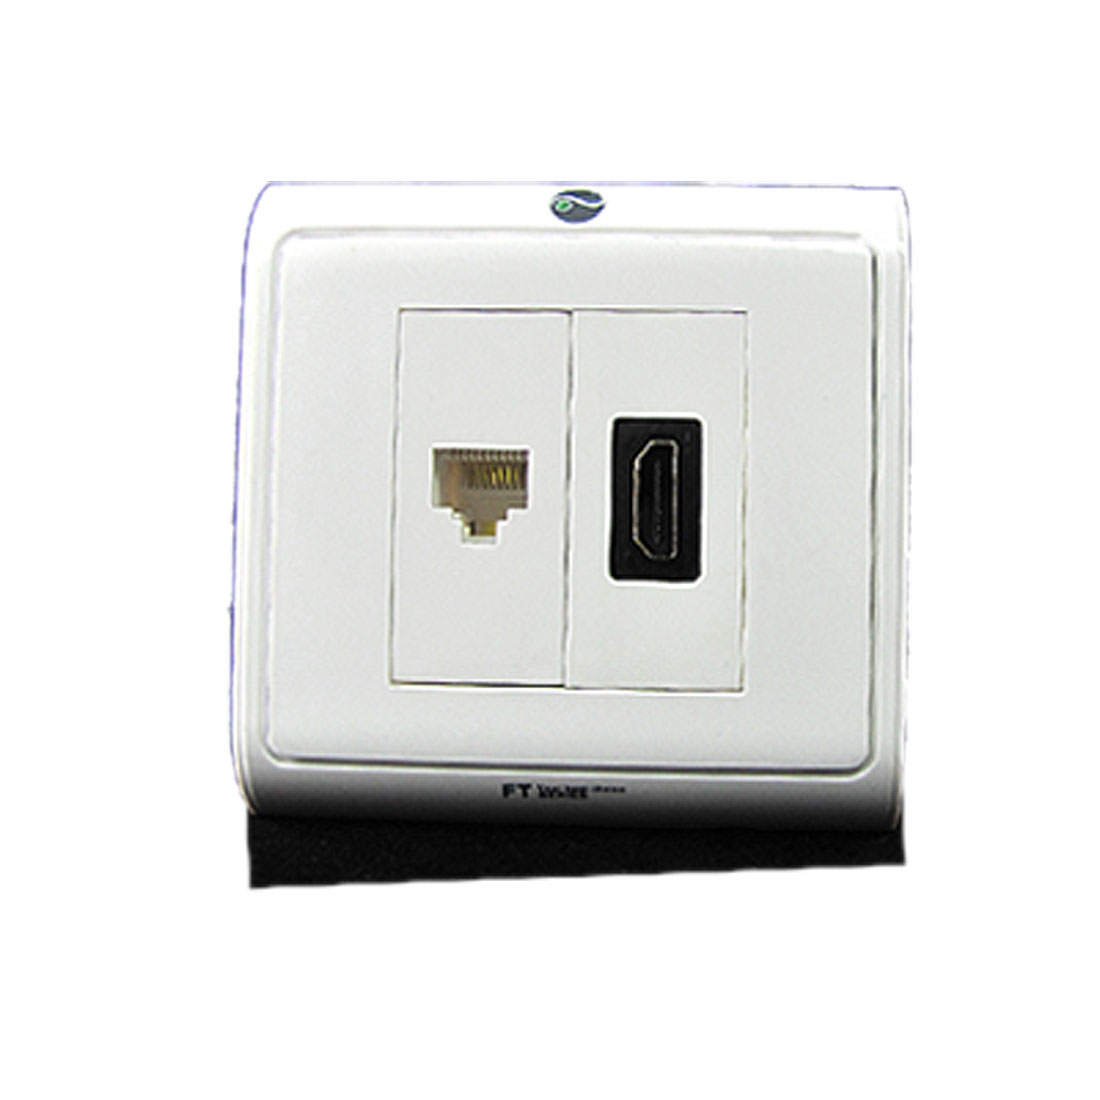 HDMI RJ45 Network Outlet Wall Plate Panel Cover White